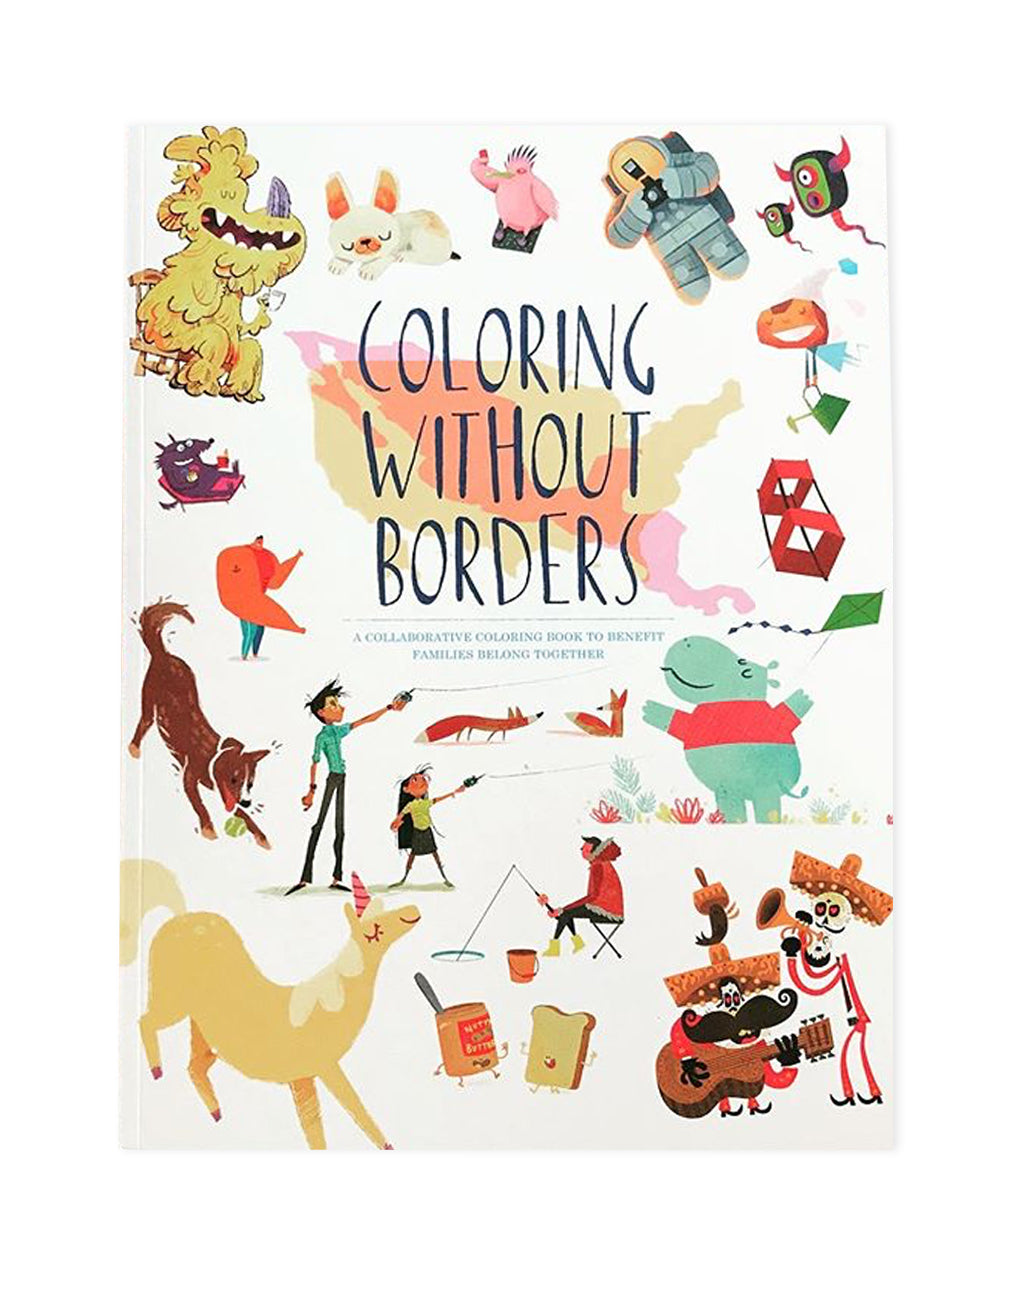 Coloring Without Borders Coloring Book | The Little Market